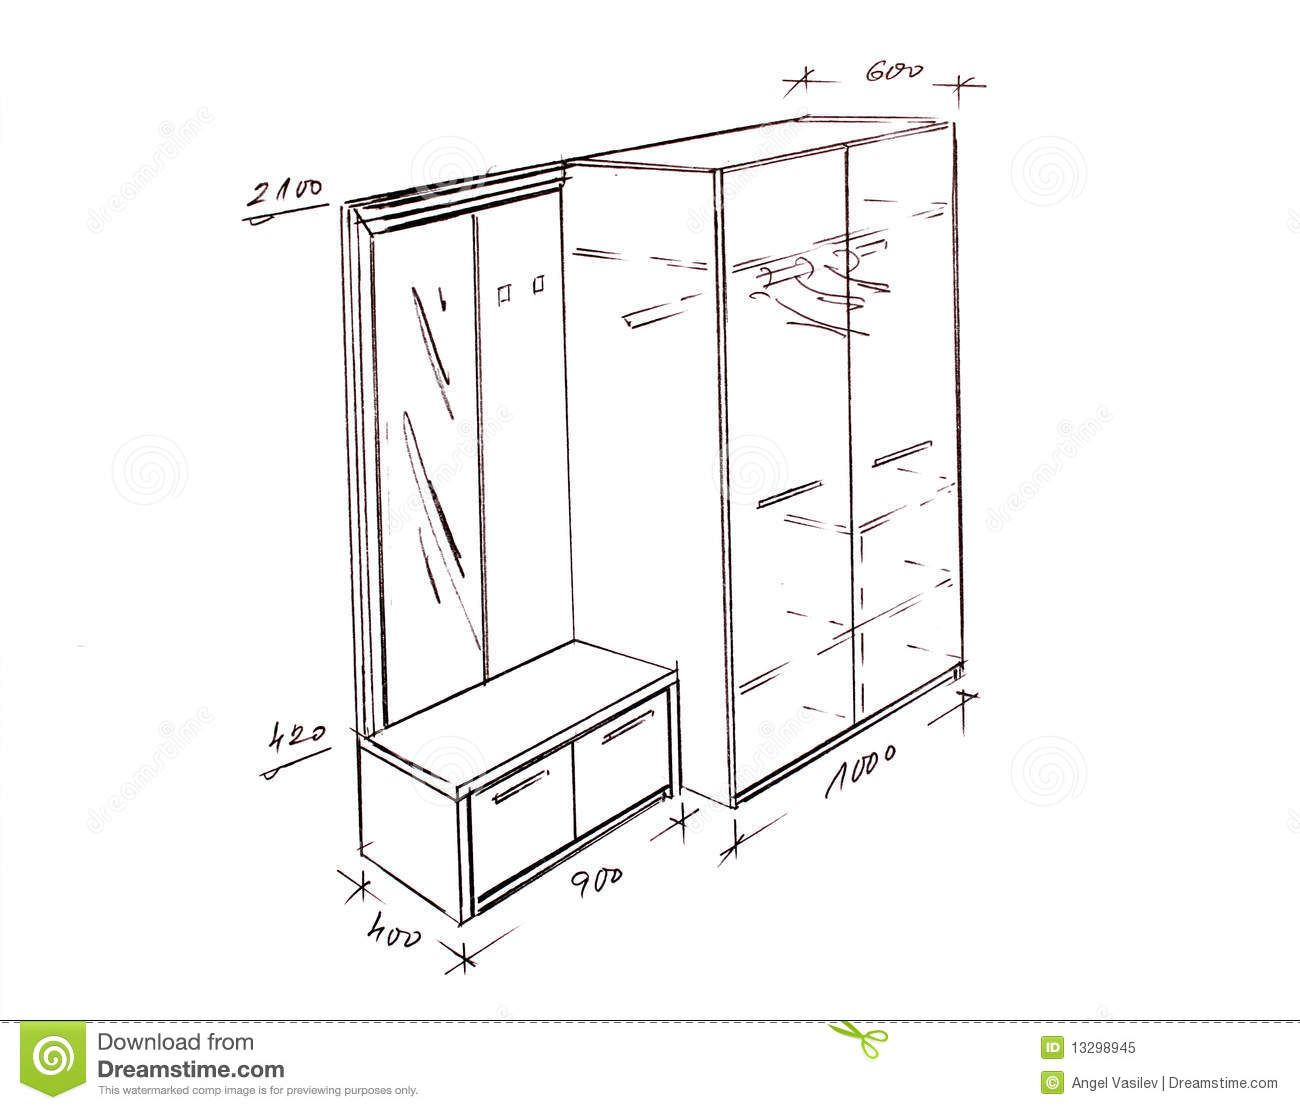 Furniture design drawings furniture design drawings for Drawing room design images